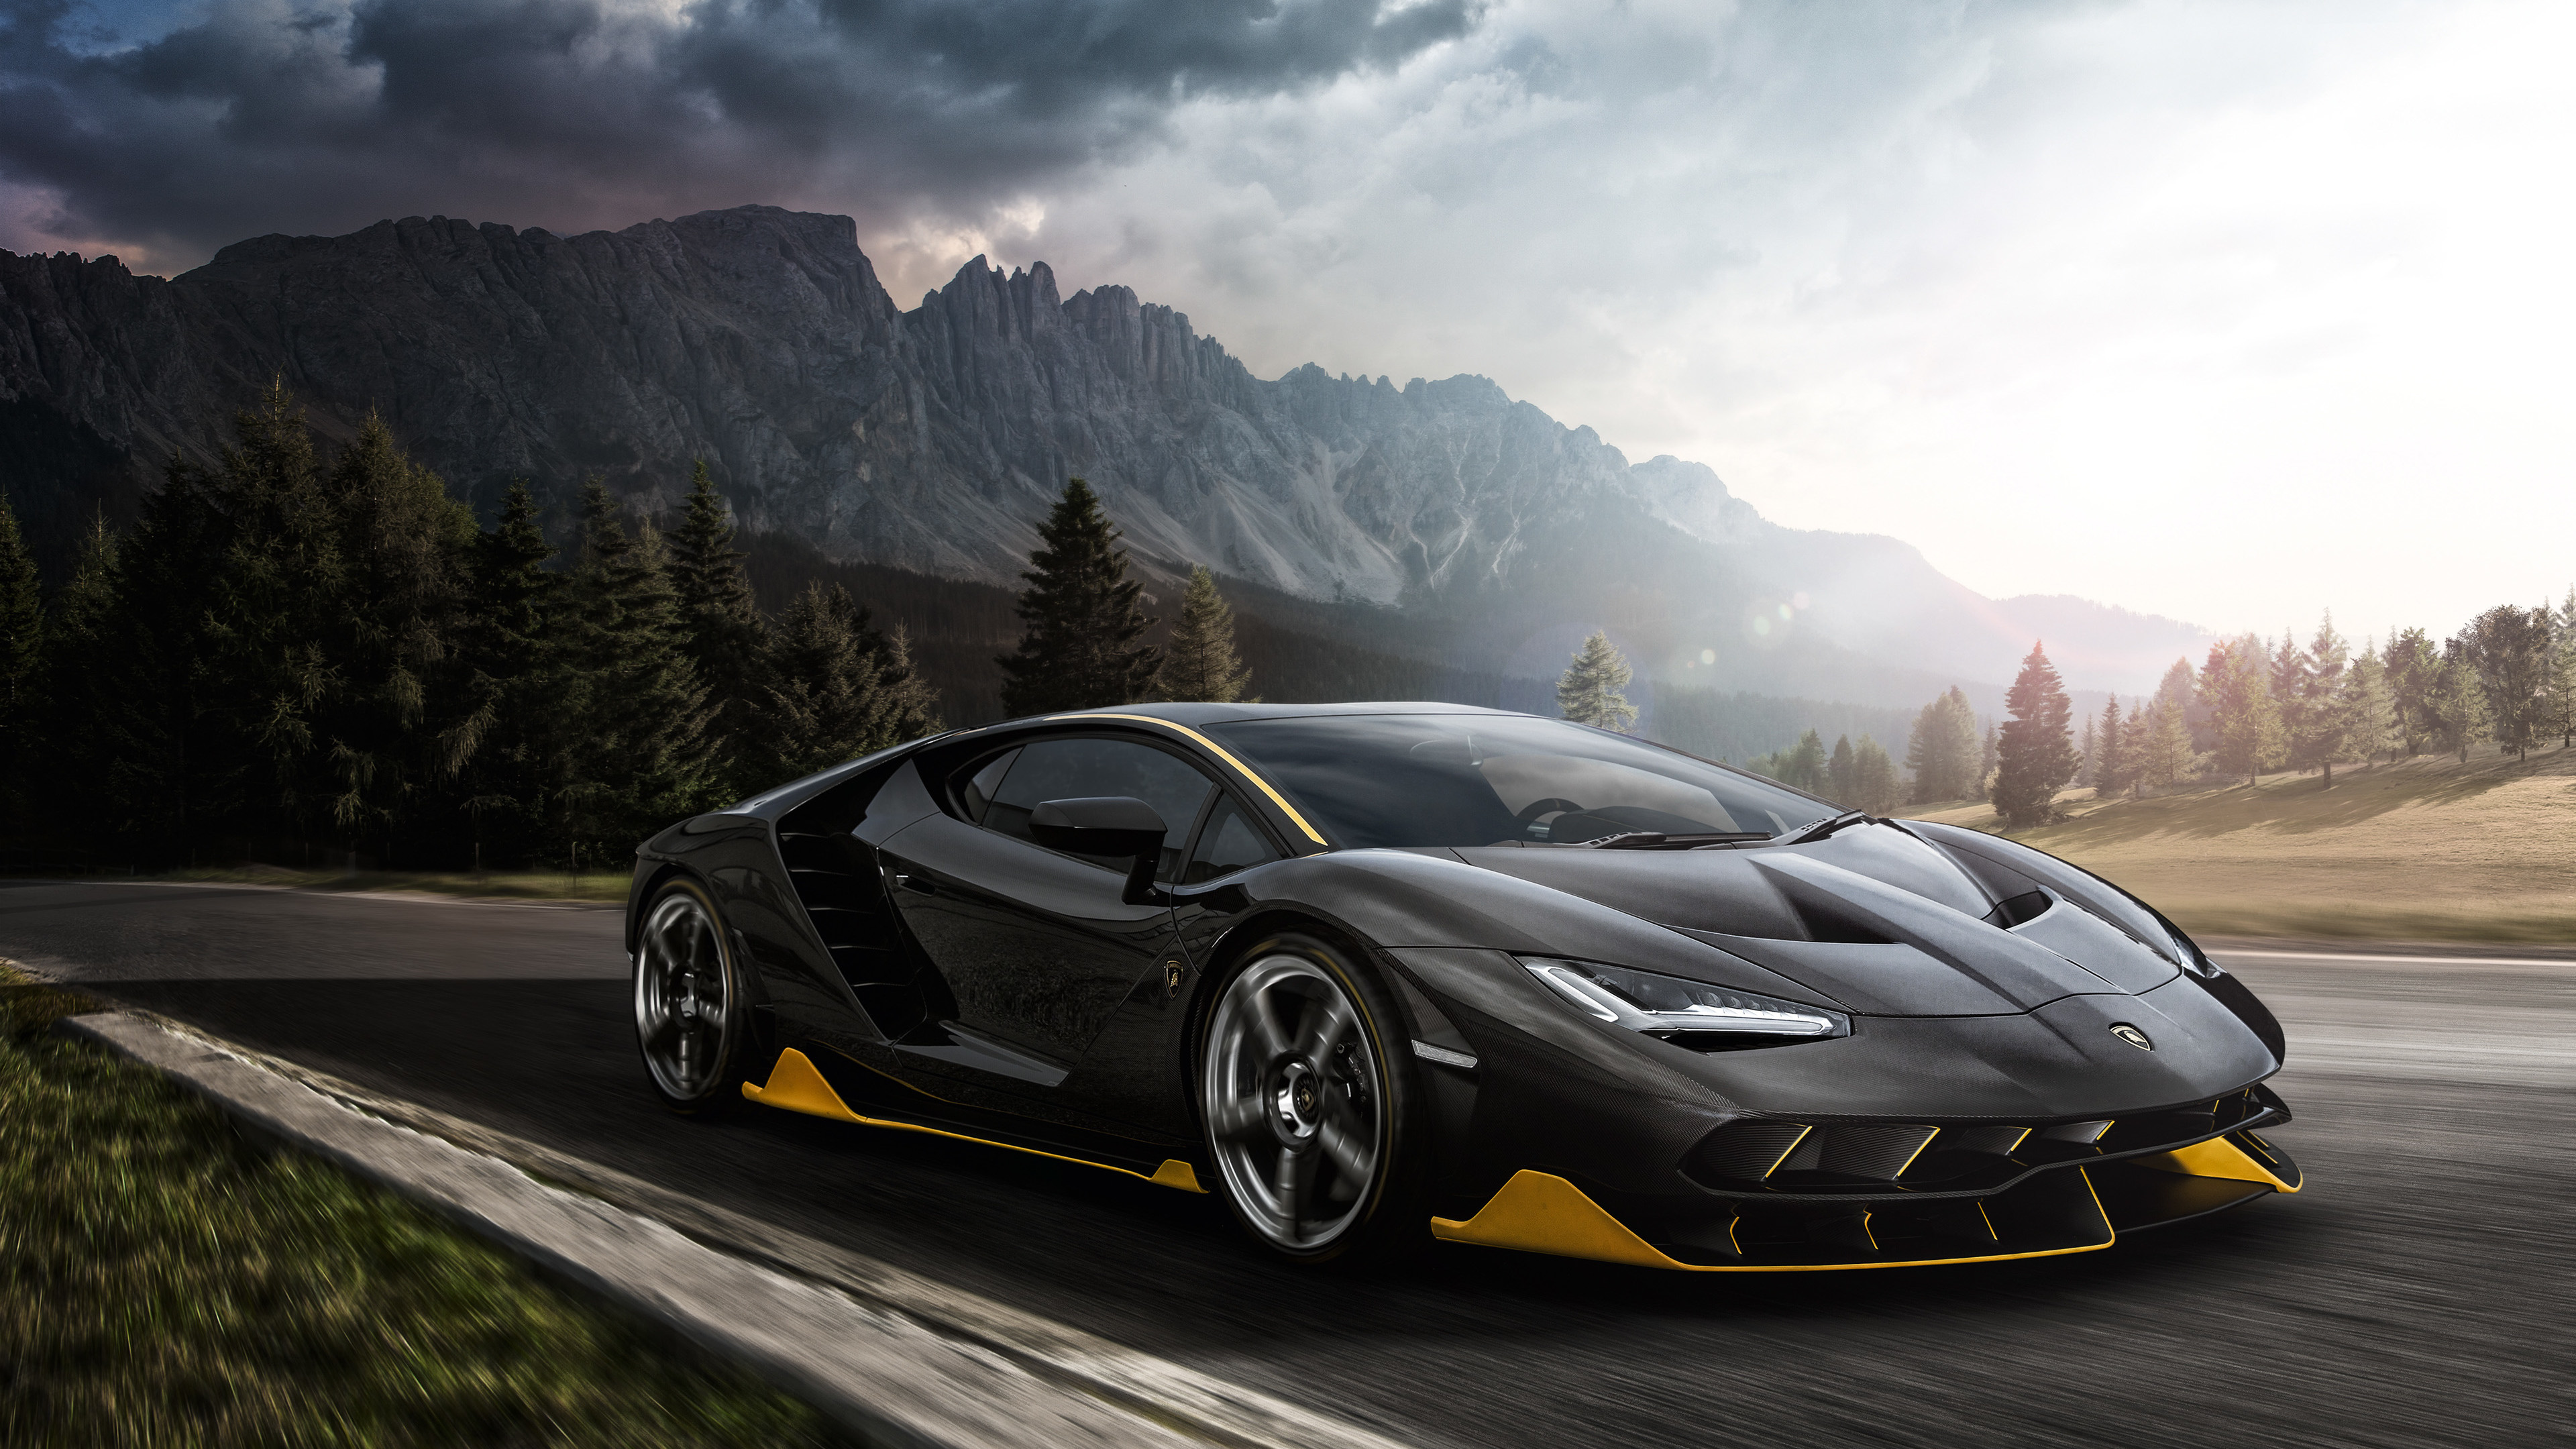 Black Lamborghini Aventador 4k 2018 lamborghini wallpapers, lamborghini aventador wallpapers, hd